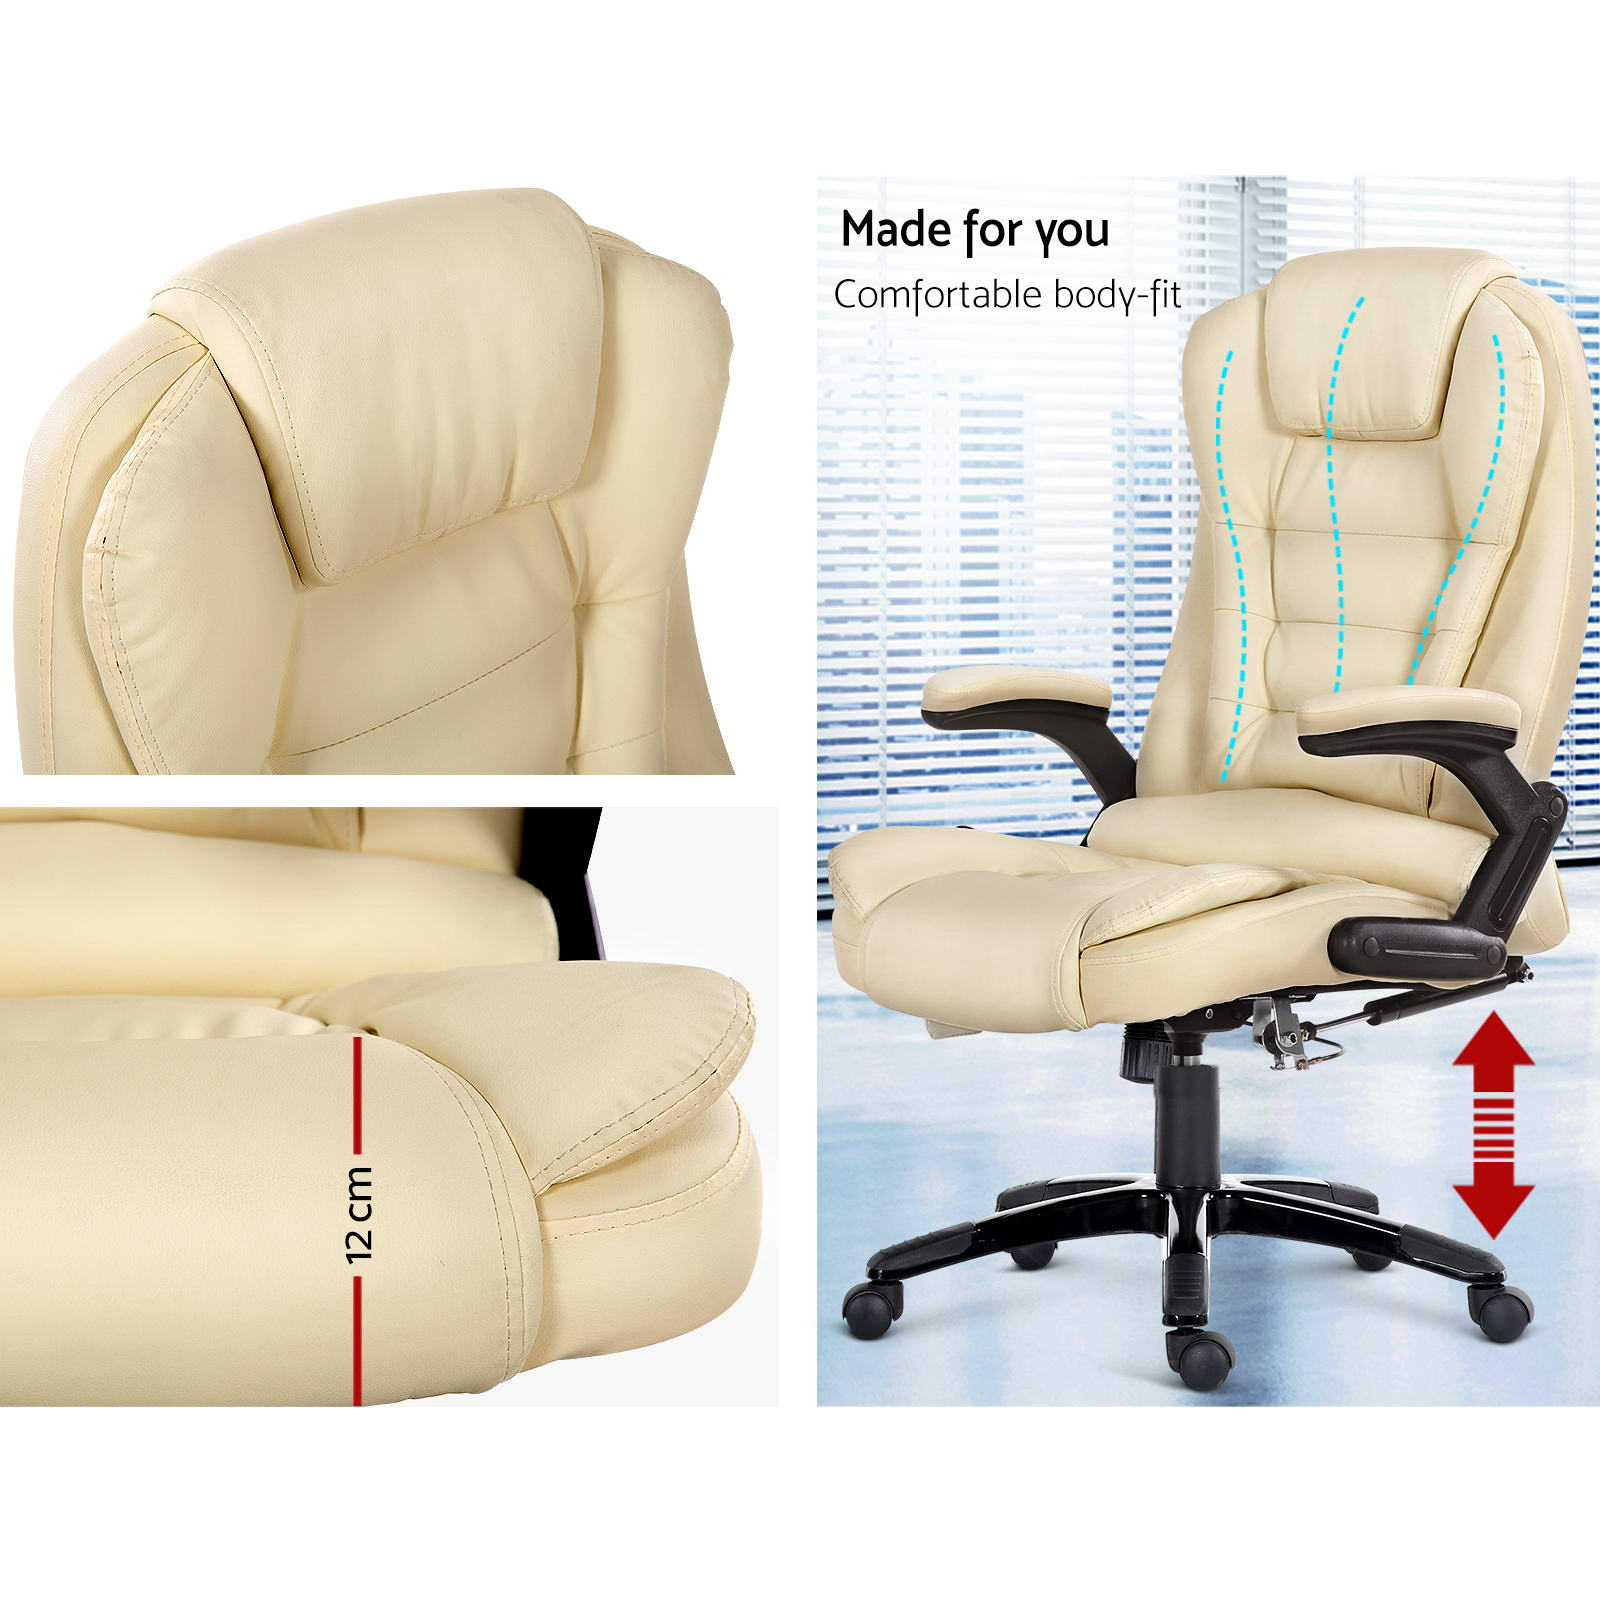 reclining office chairs australia chair lift stairs ireland 8 point massage executive computer heated recliner pu